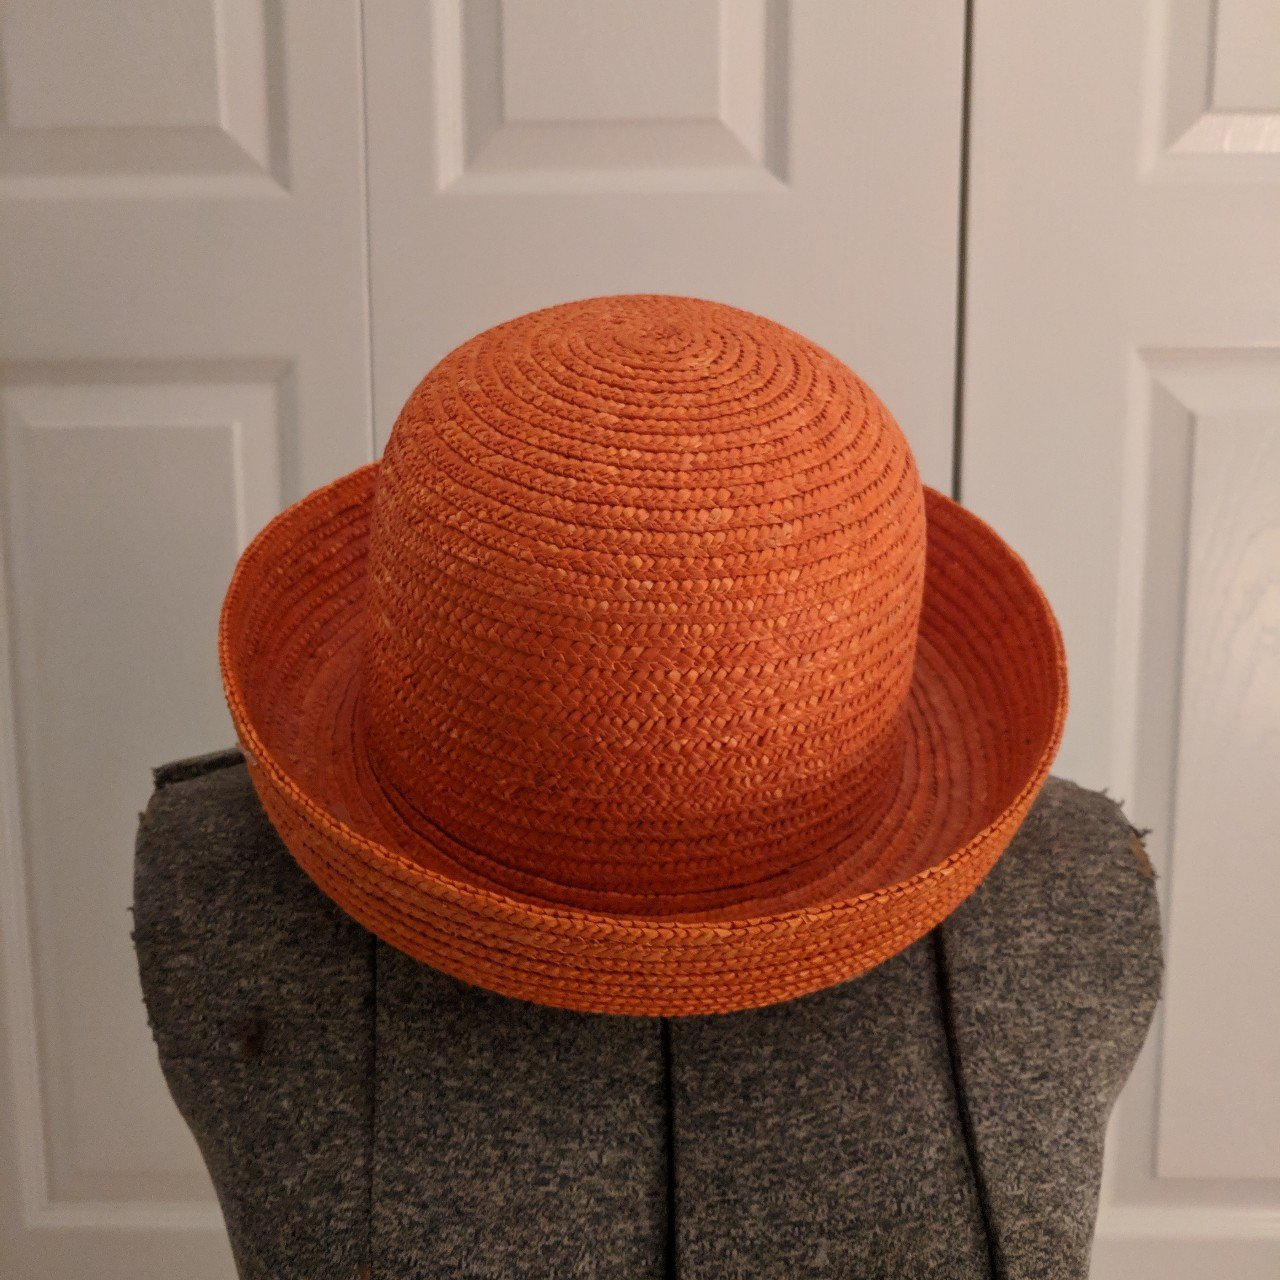 Summer Beach Orange Straw Bowler Hat The absolute perfect   - Depop a3fd7741fa9